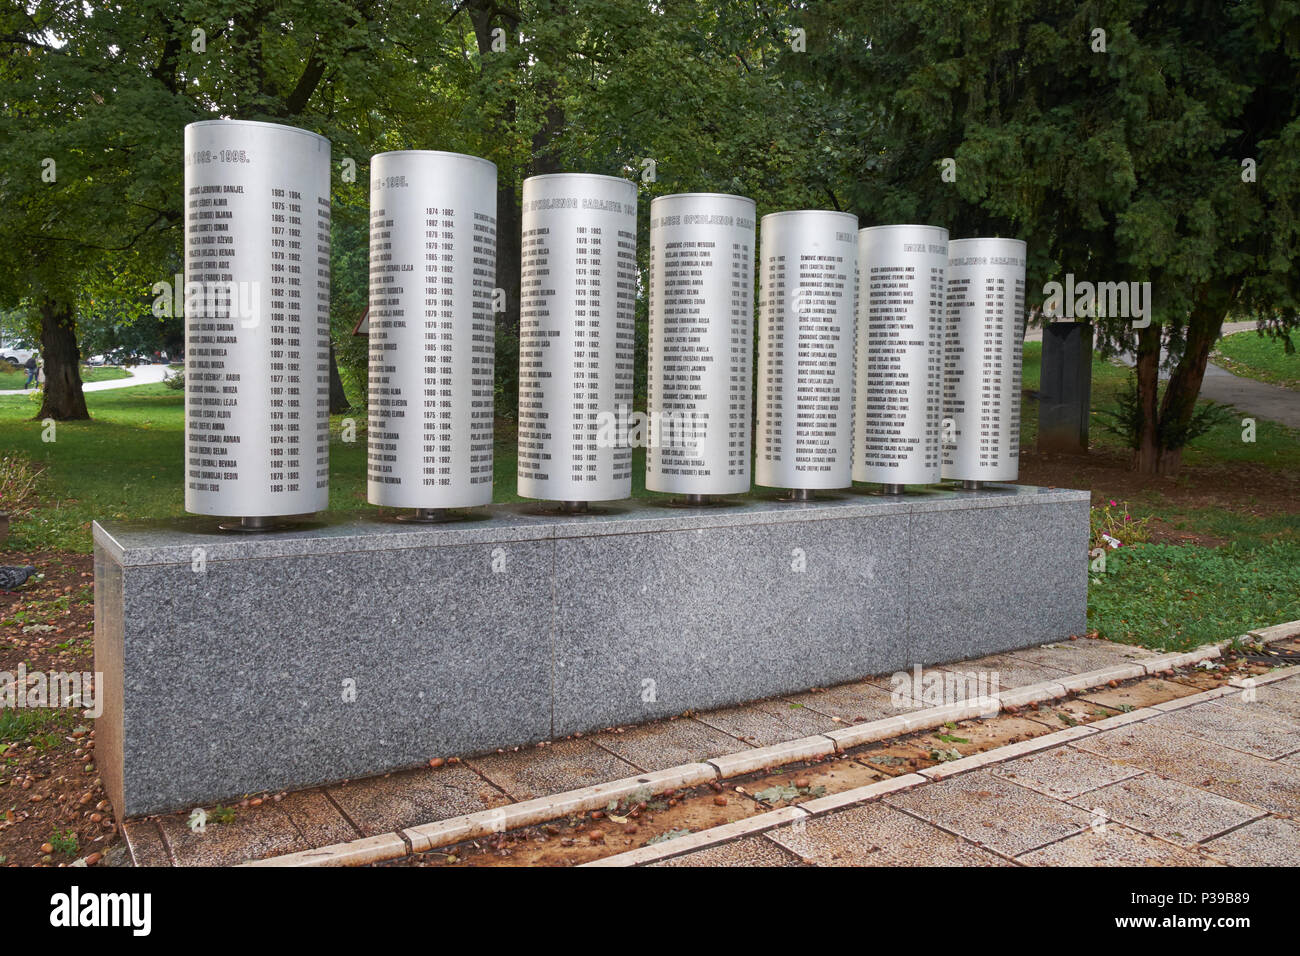 Plinth bearing the names of the 521 children killed during the siege of Sarajevo 1992-96. Veliki (Great) Park, Sarajevo,Bosnia and Herzegovina. - Stock Image